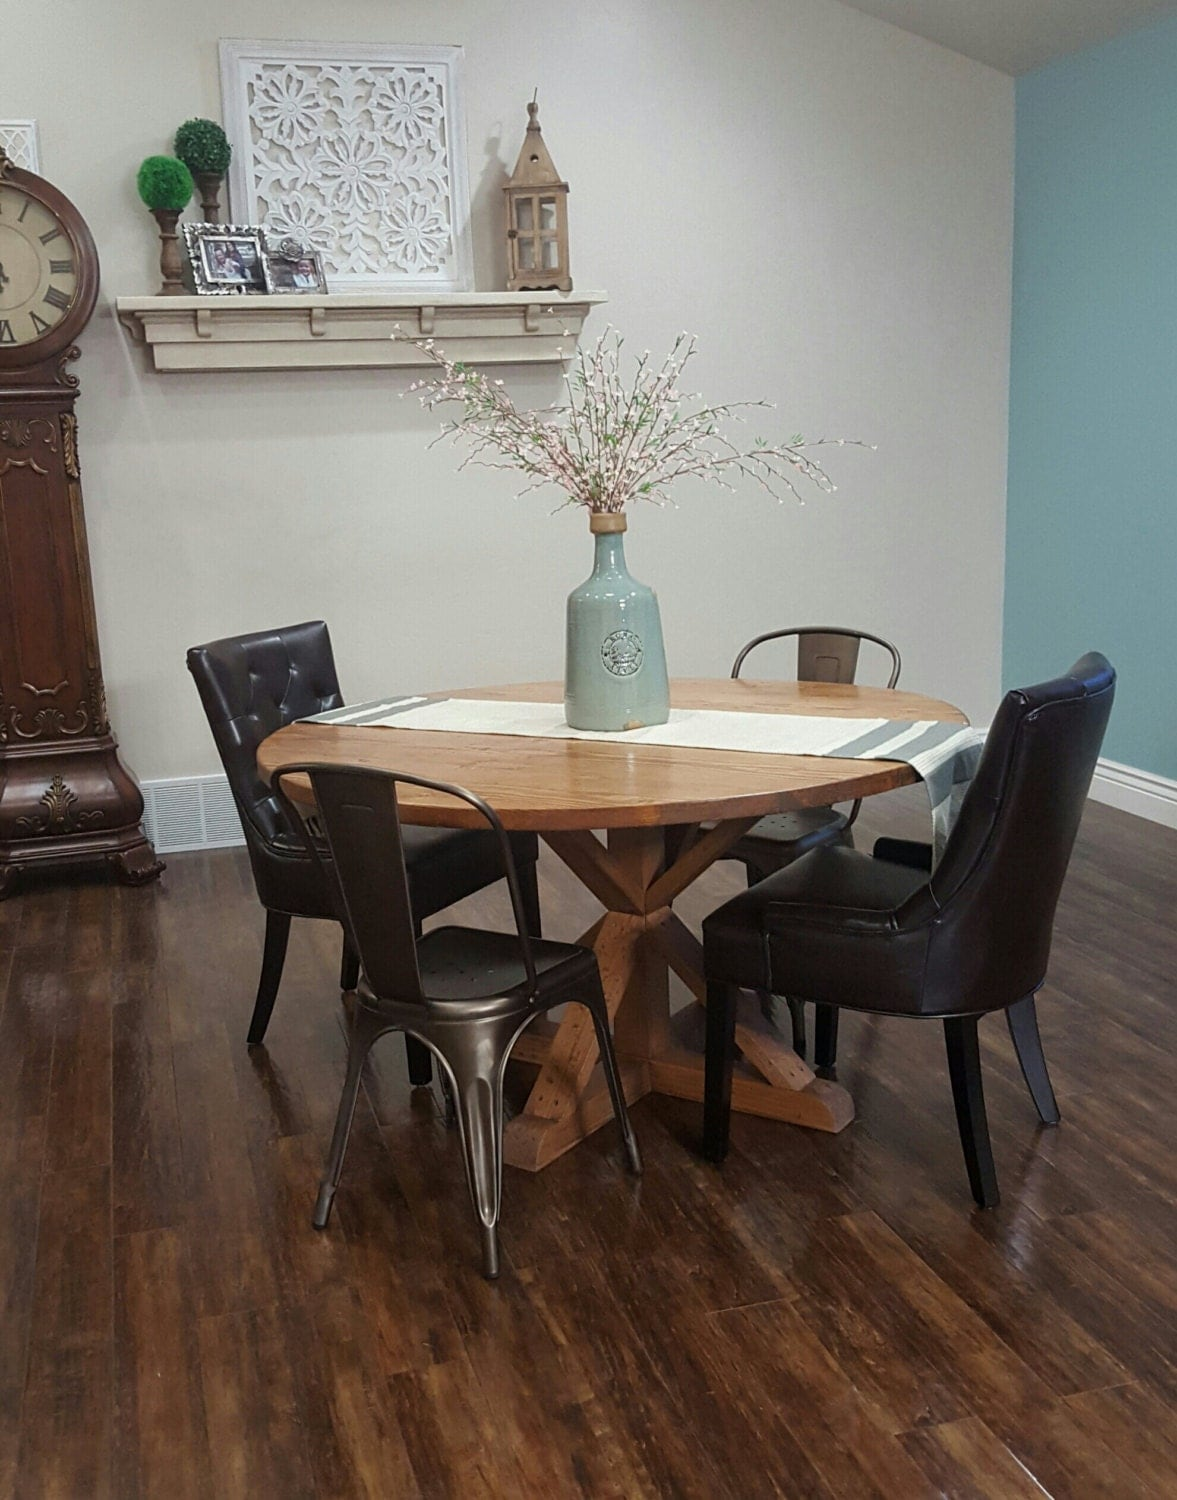 rustic handmade round farmhouse table by ModernRefinement on Etsy